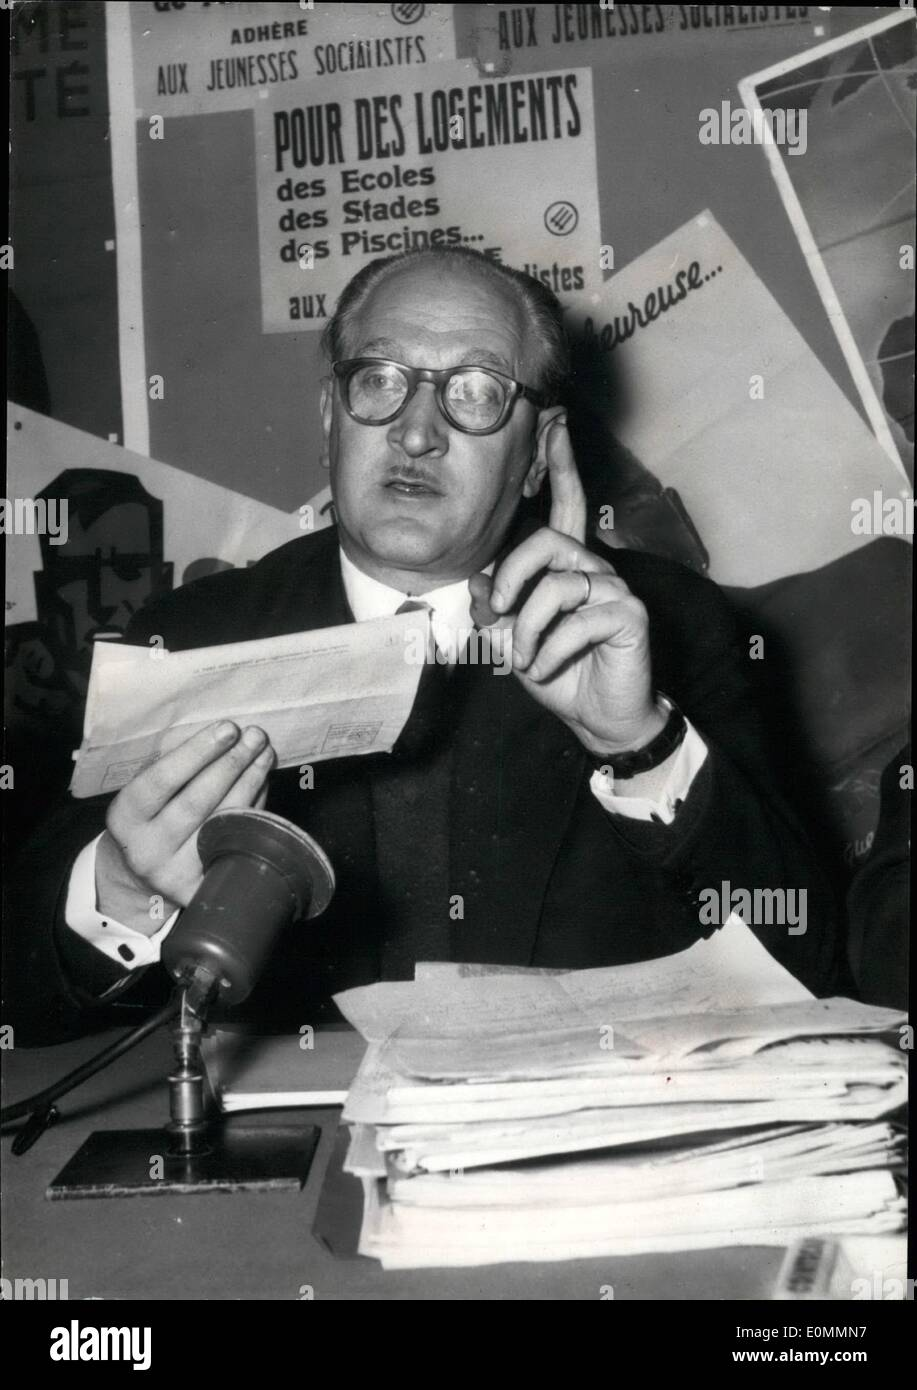 Dec. 12, 1955 - Election Campaign in Full Swing - Political Leaders of Different French Parties Have Launched the Election Campaign OPS : Guy Mollet, Leader of the Socialist Party, During His Press Conference This Morning - Stock Image